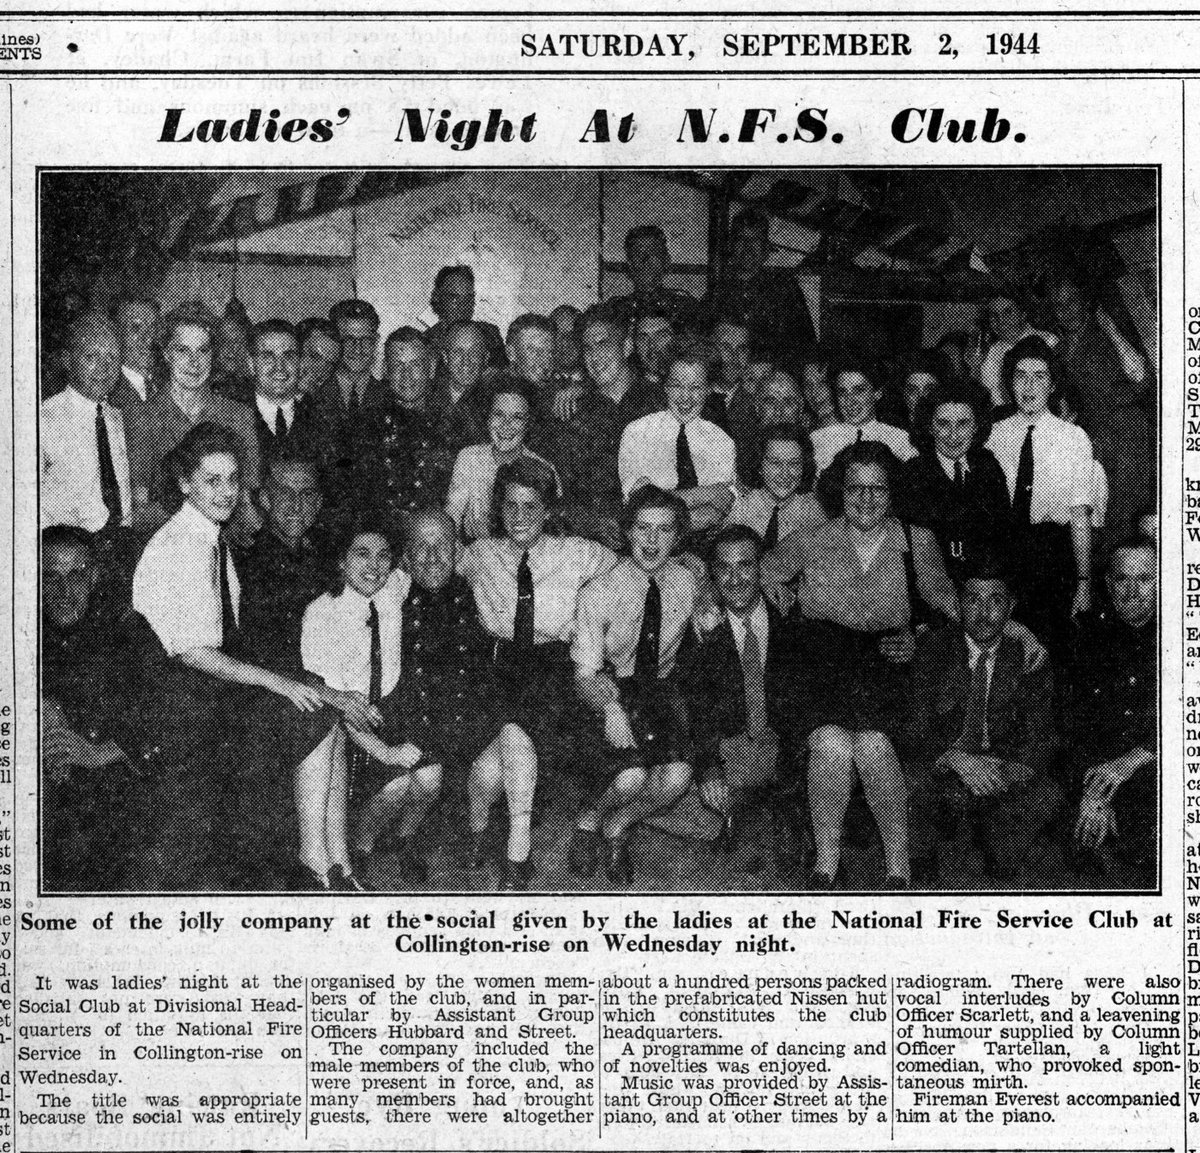 """""""Ladies' Night at N.F.S. Club... the Social Club at Divisional Headquarters of the National Fire Service in Collington Rise... hundred persons packed into the prefabricated Nissen hut which constitutes the club headquarters."""" #Bexhill #Sussex #WW2 #Fire #History #1940s #HomeFront https://t.co/rmgT1p5xOr"""